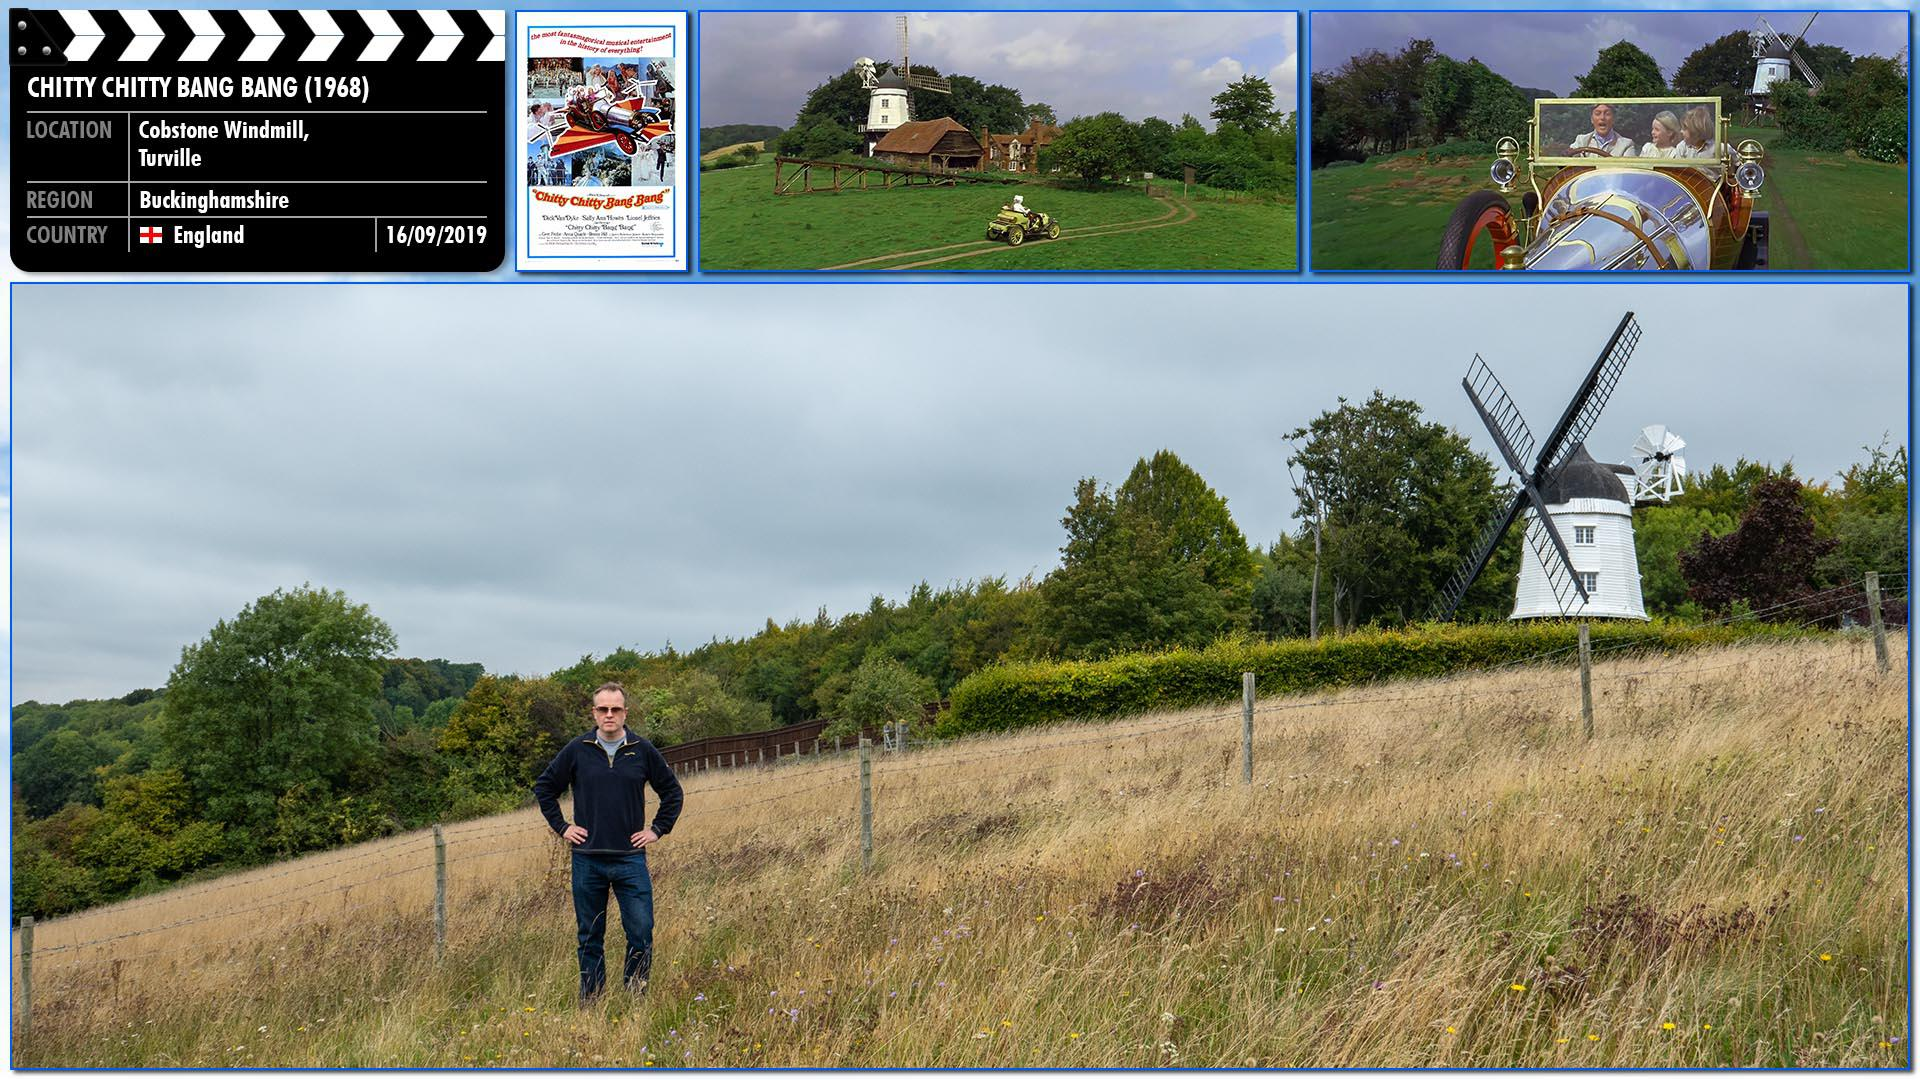 Filming location photo for Chitty Chitty Bang Bang (1968) 3 of 3